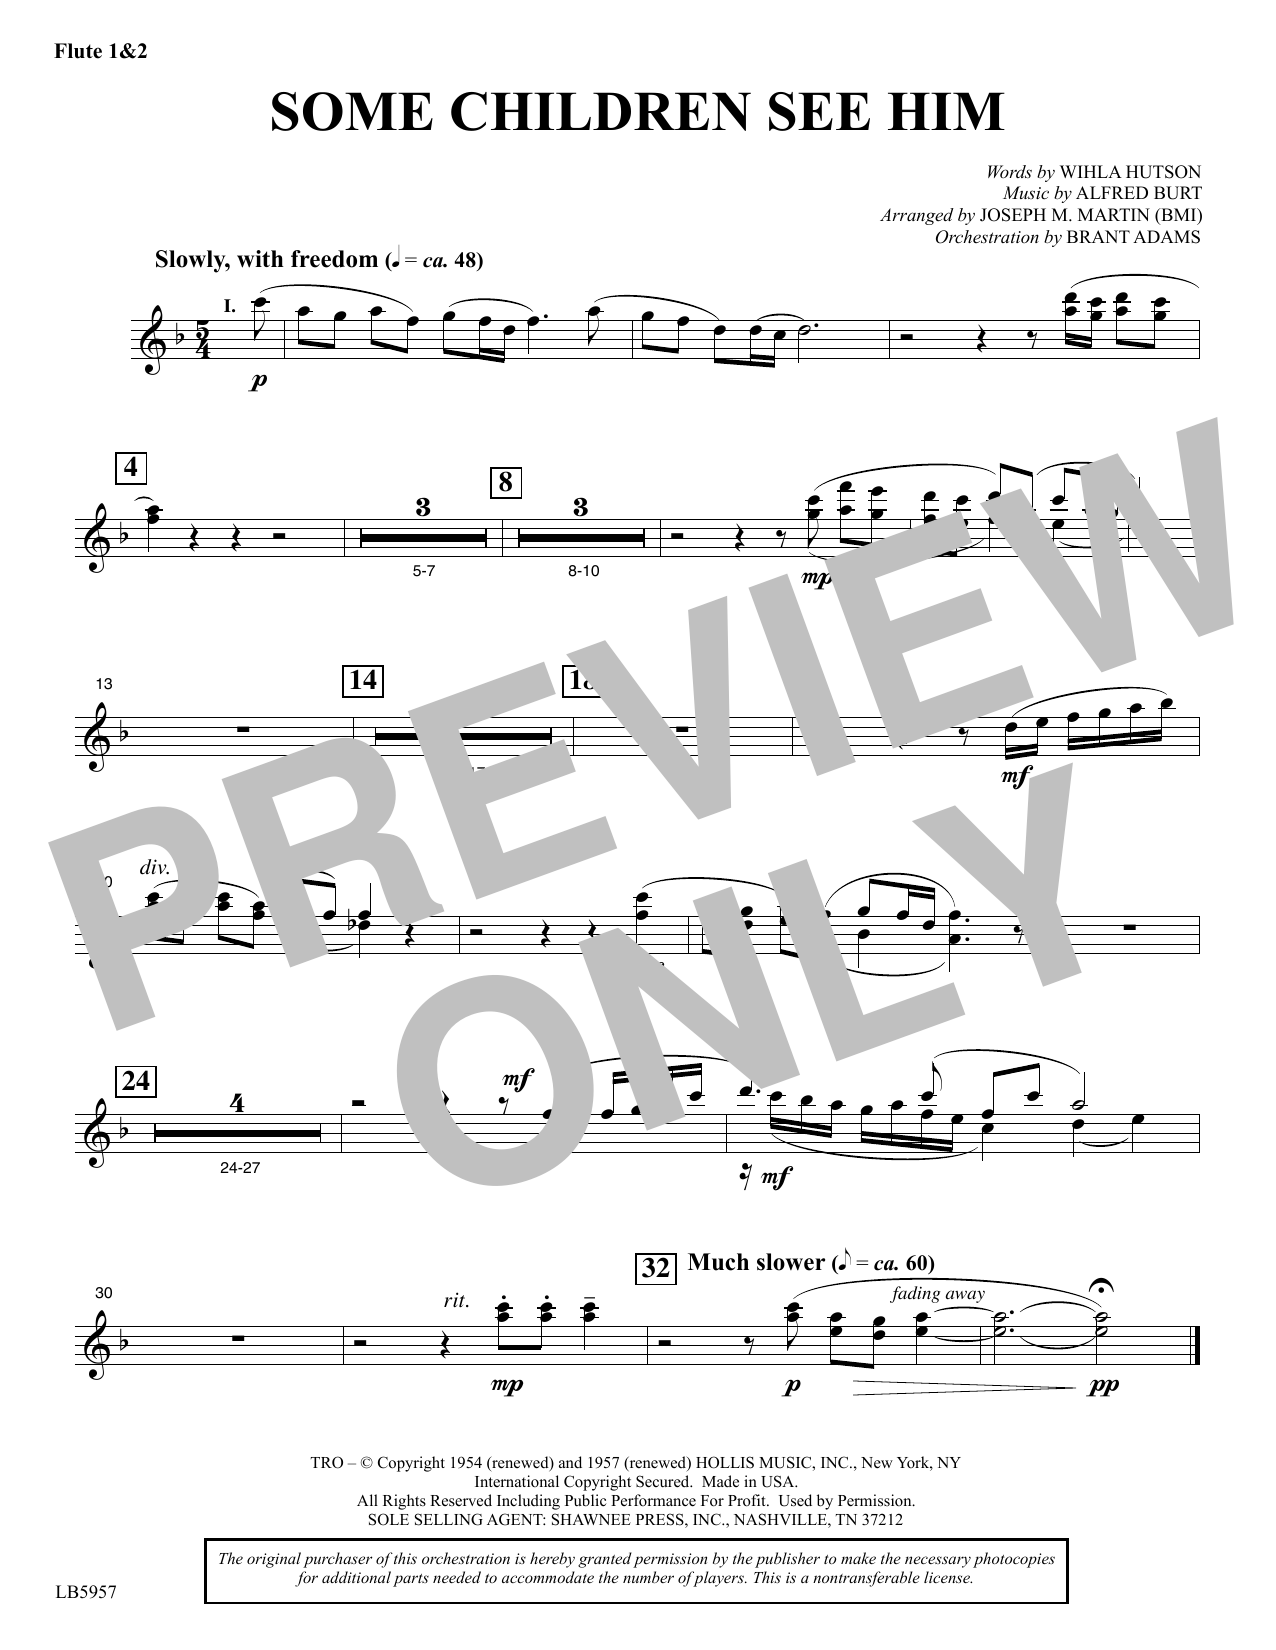 Some Children See Him (arr. Joseph M. Martin) - Flute 1 & 2 Sheet Music